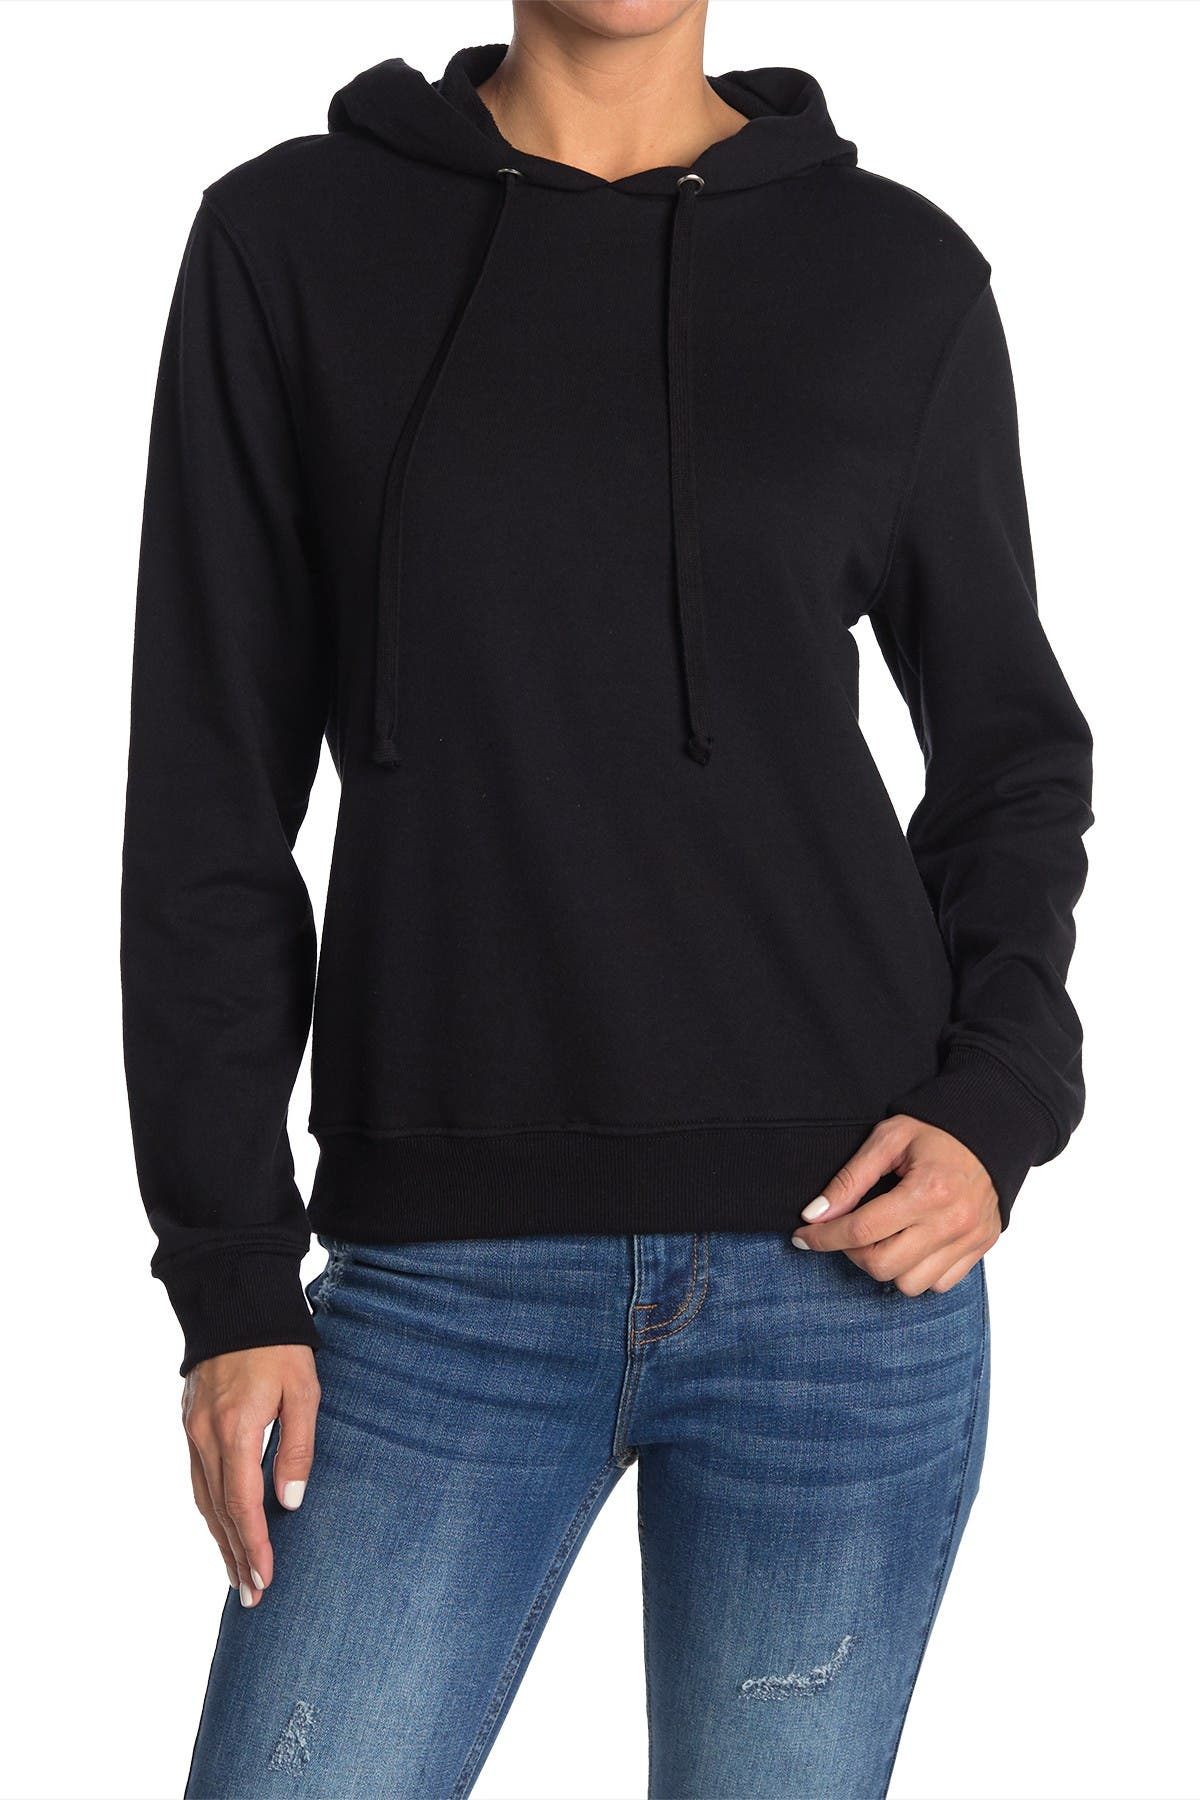 Image of Abound Solid Hoodie Pullover